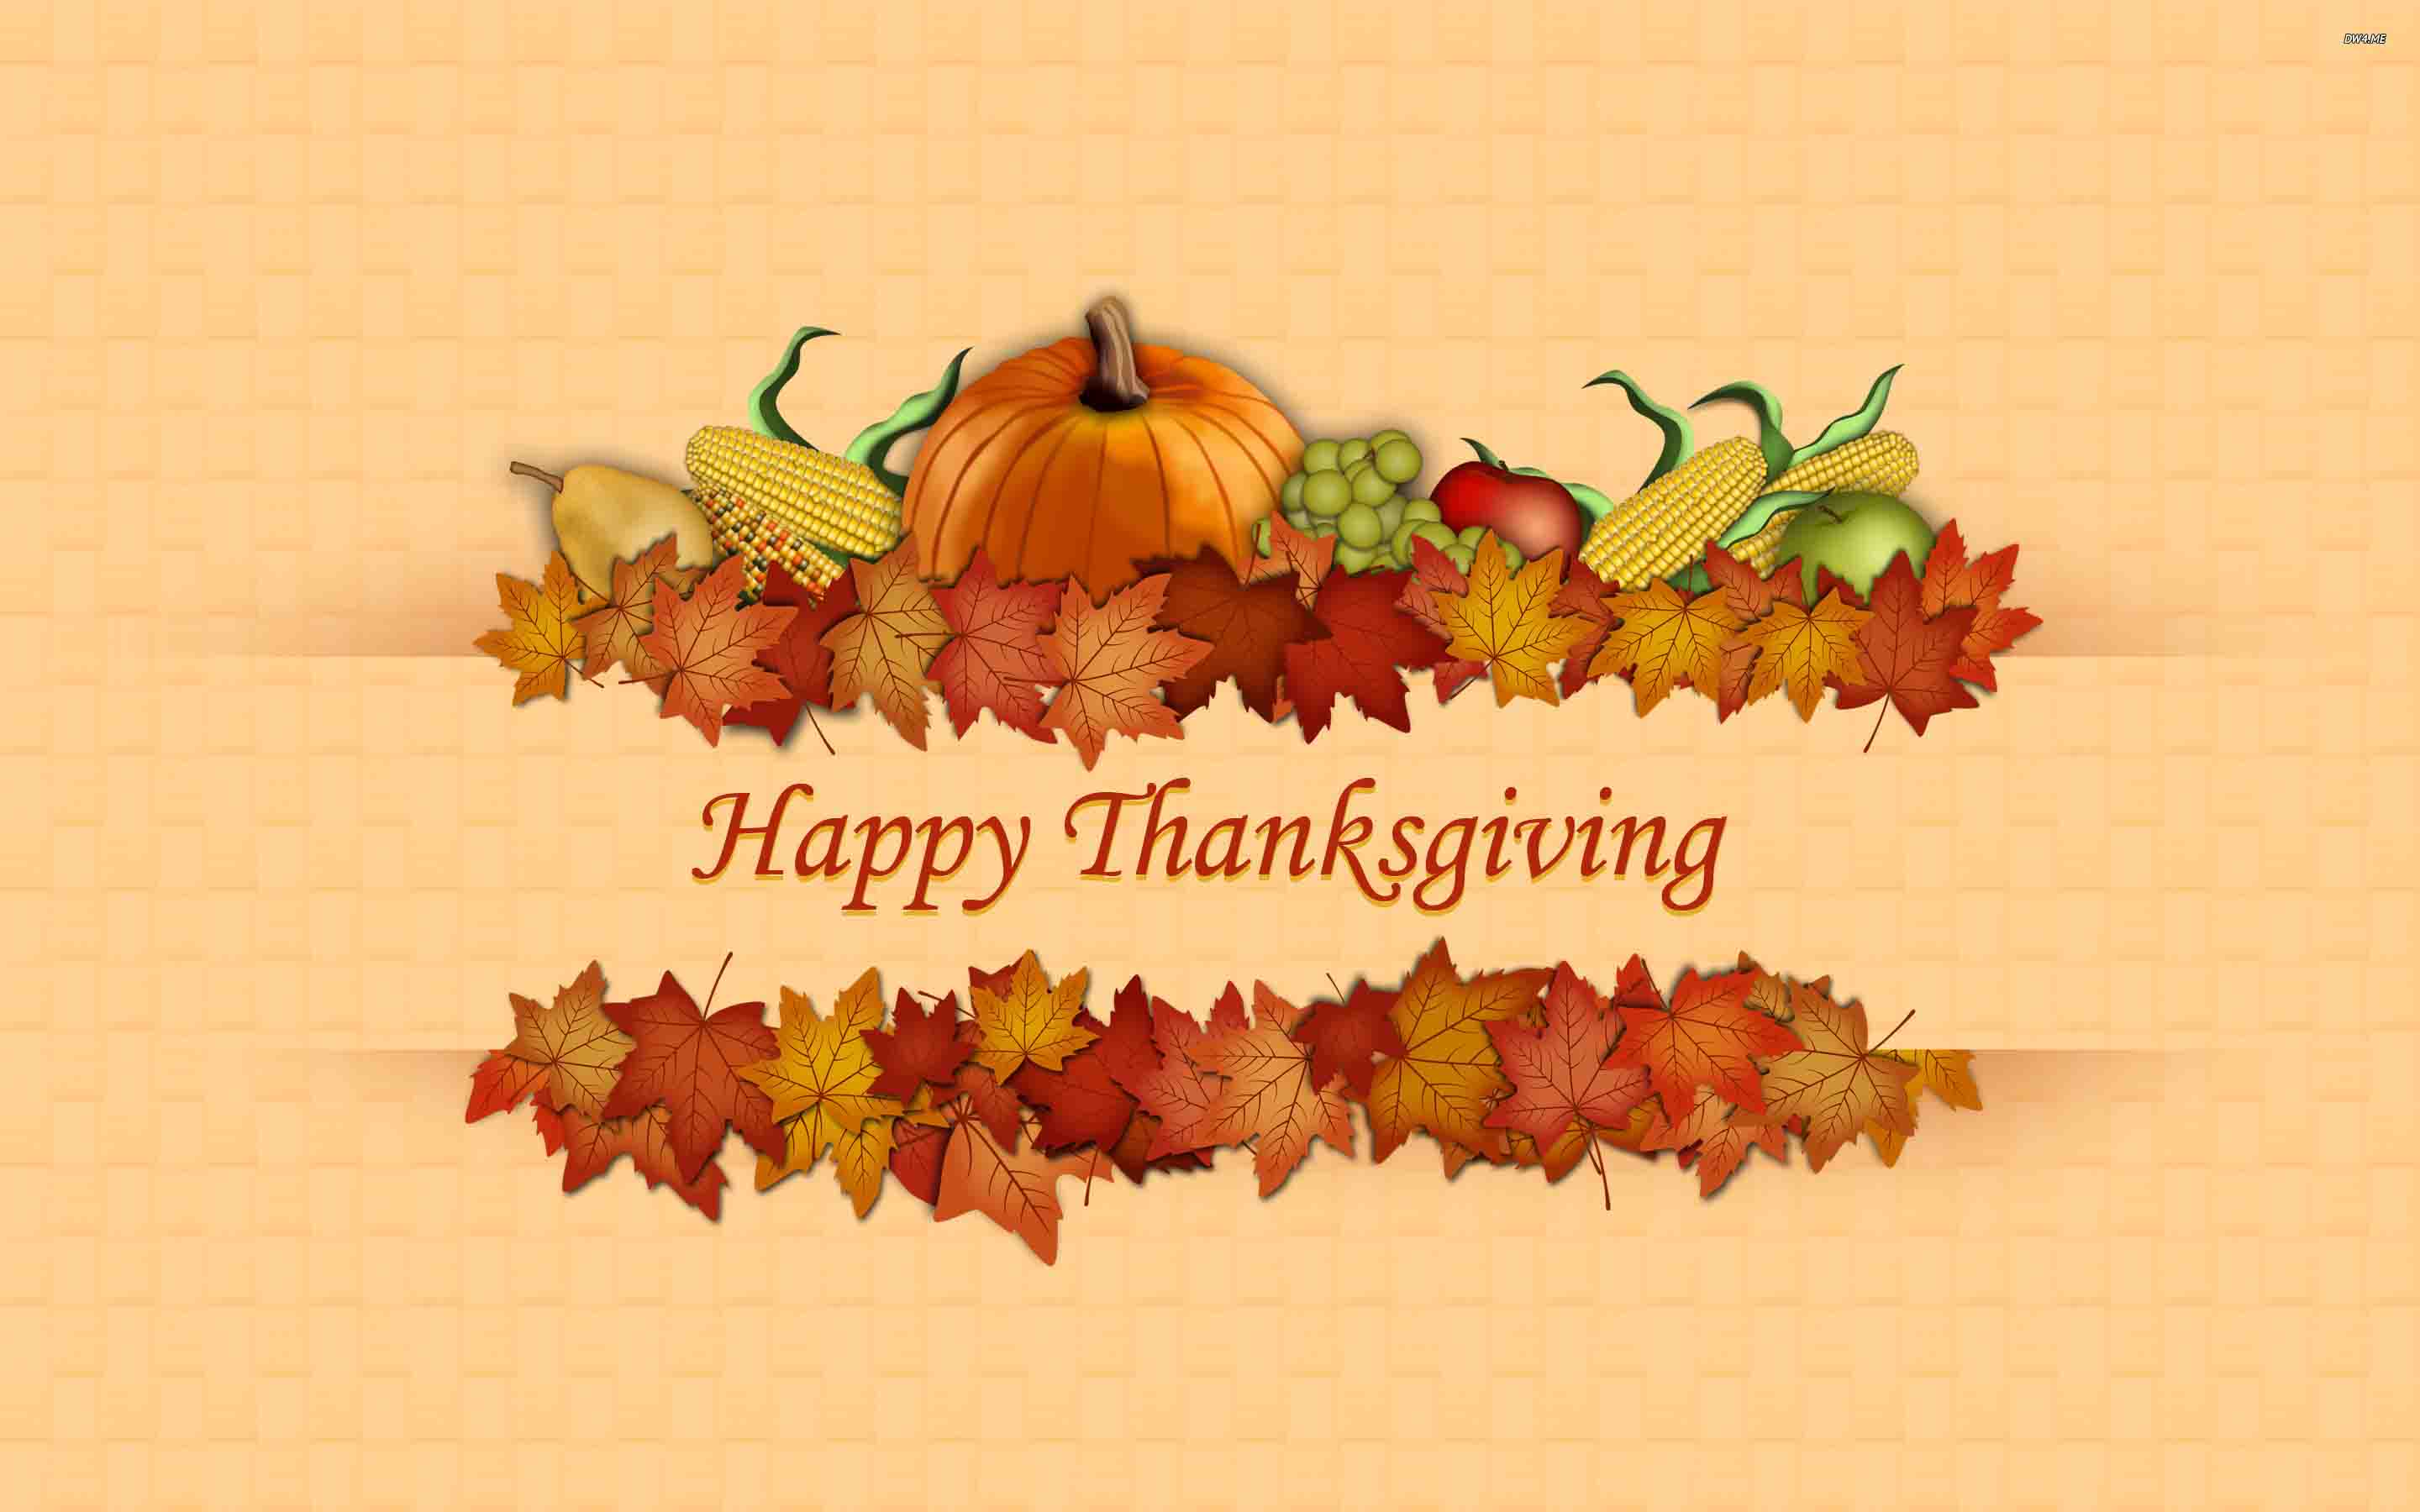 Thanksgiving day wallpapers high resolution and quality - Wallpaper desktop thanksgiving ...